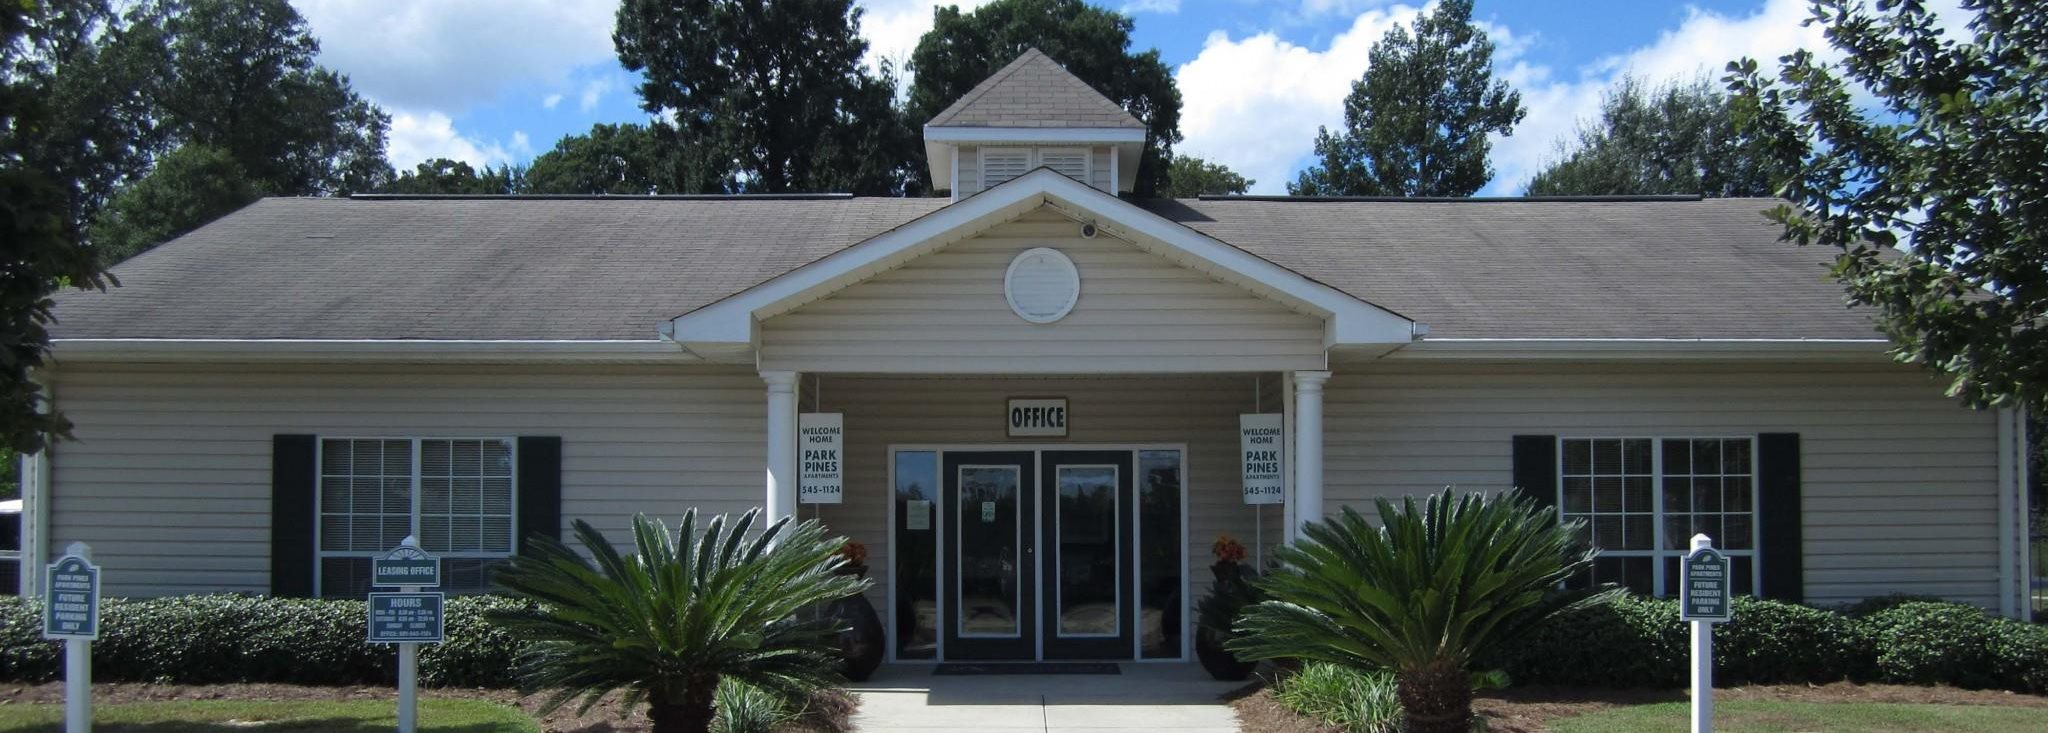 Classic Property at Park Pines Apartments, Hattiesburg